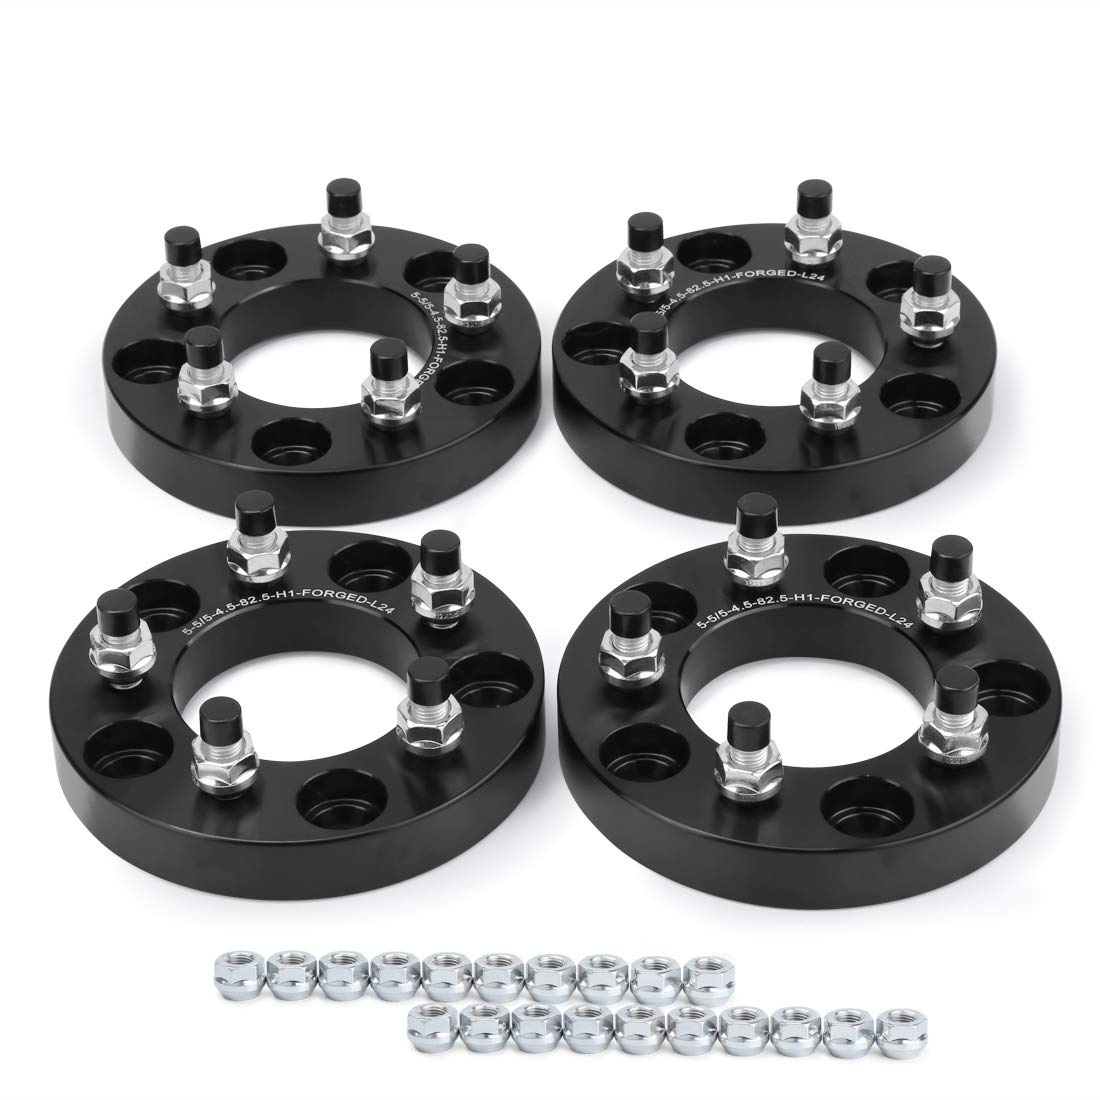 dynofit 5x5 to 5x4.5 Wheel Adapters for Jeep YJ TJ ZJ XJ KJ KK MK Wheels on WJ WK JK//JKU XK JC49 Rim//Tires Conversion Adapter 1 25mm//pc 5x127 to 5x114.3 Forged Bolts Pattern Changed Spacers